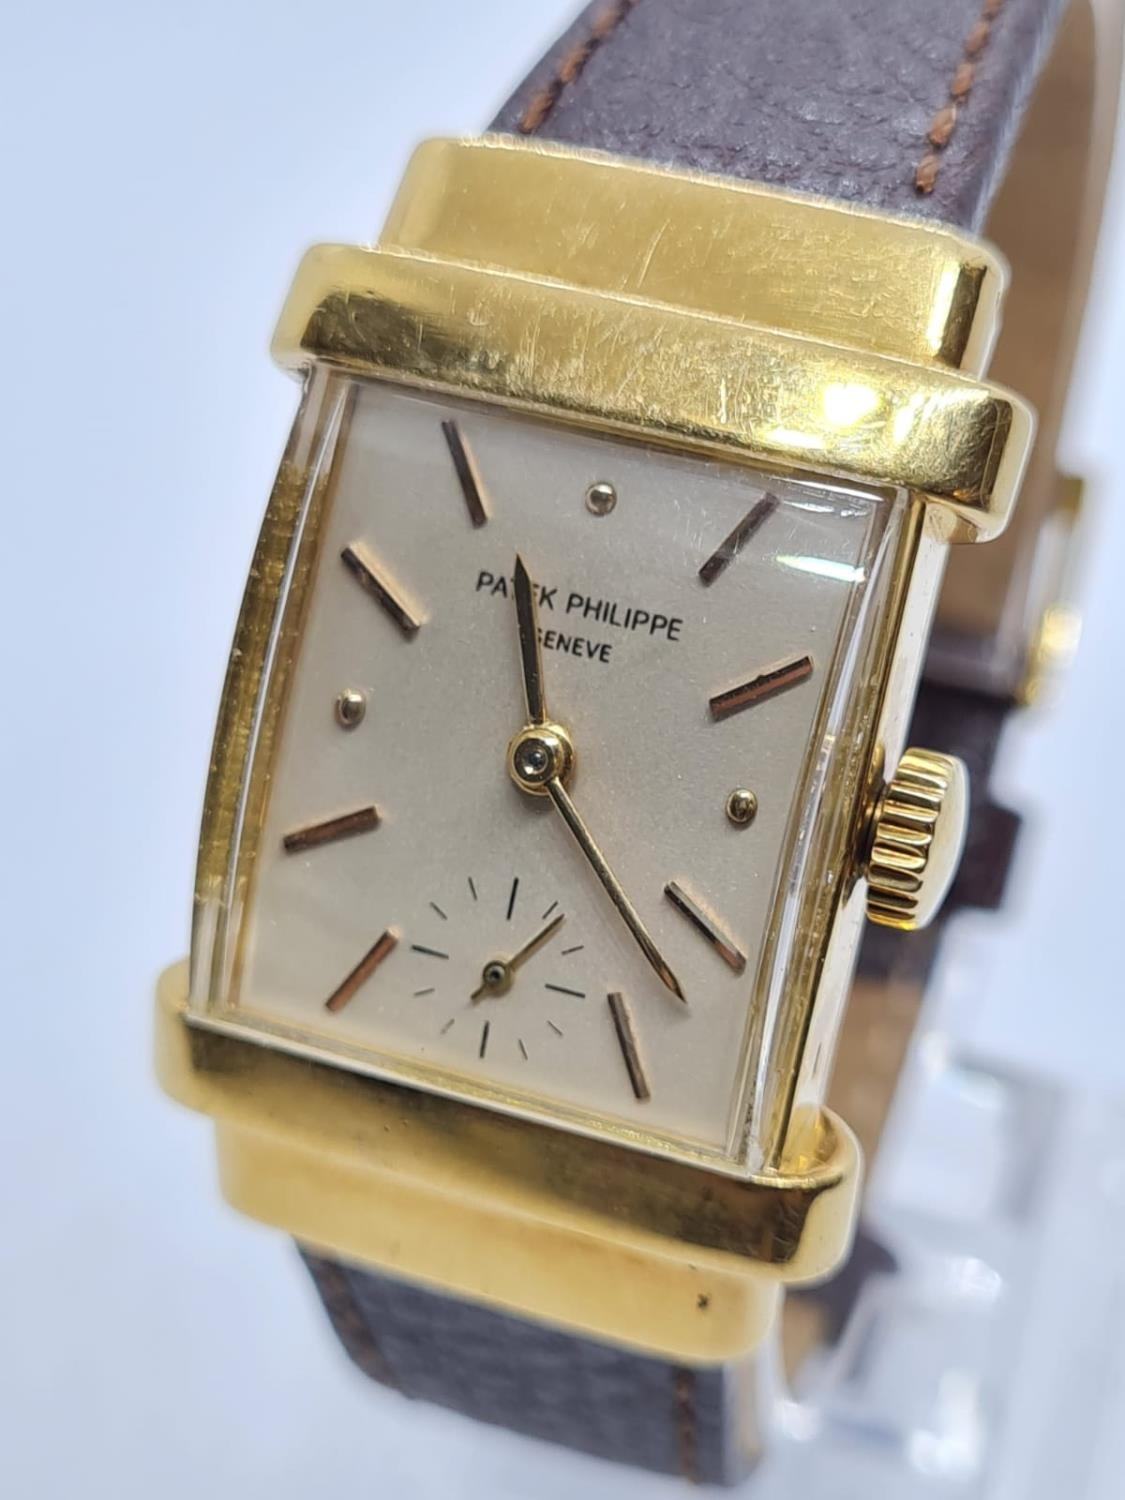 Patek Philippe Geneve WATCH tank style with rectangular face Case: 20x40mm. Brown Leather Strap. - Image 2 of 5